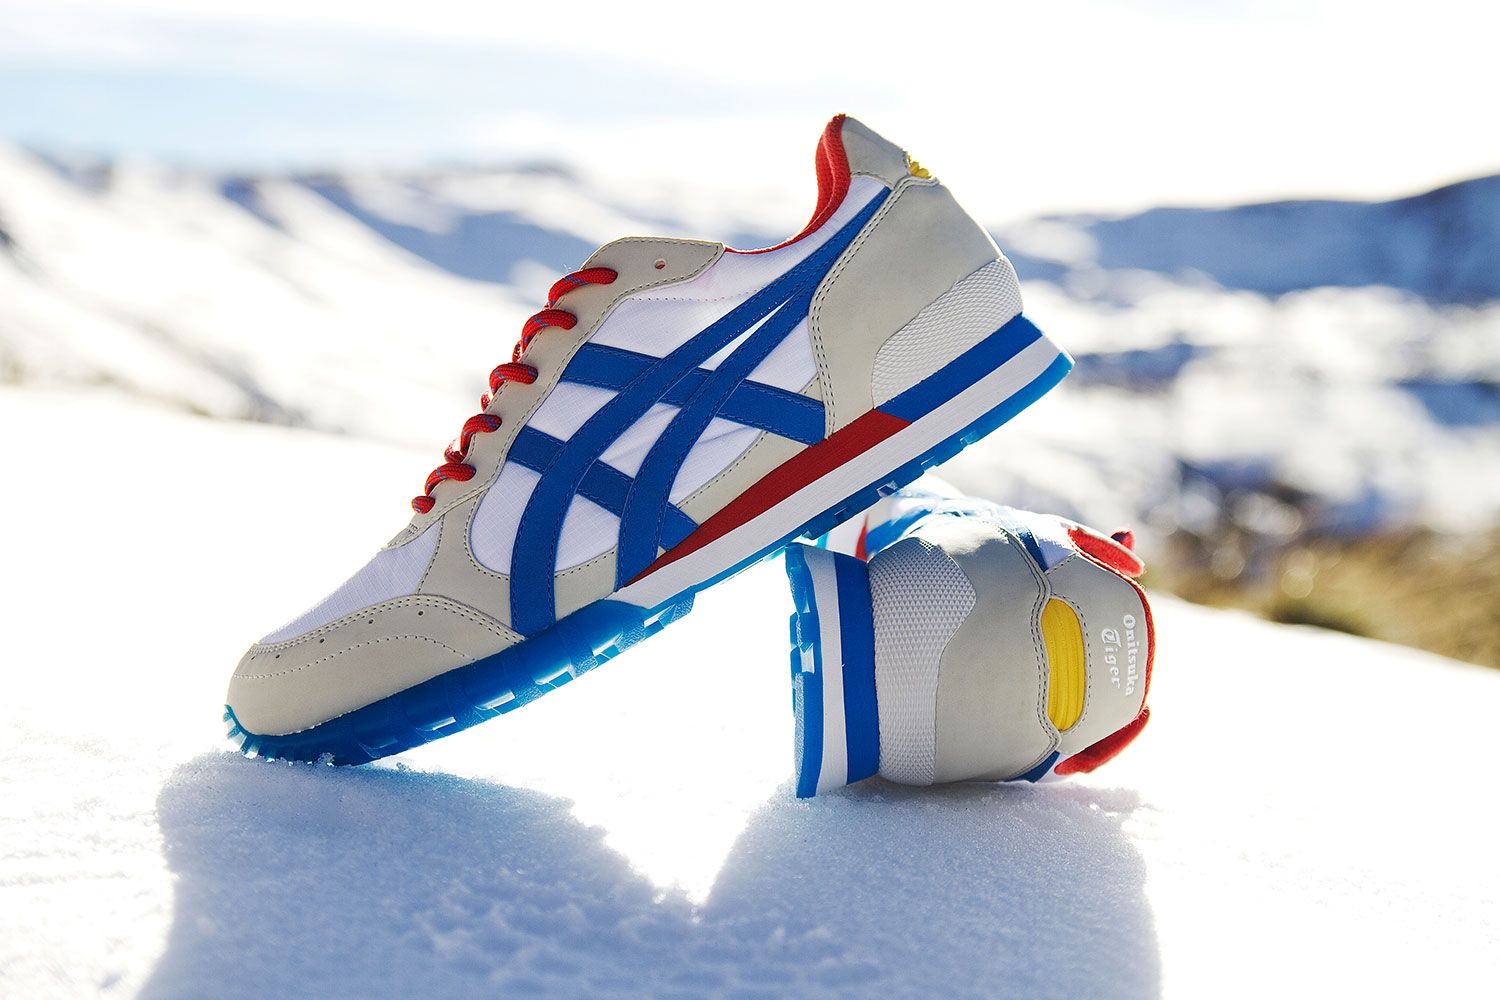 Onitsuka Tiger X Bait By Akomplice 6 200 Ft Pair